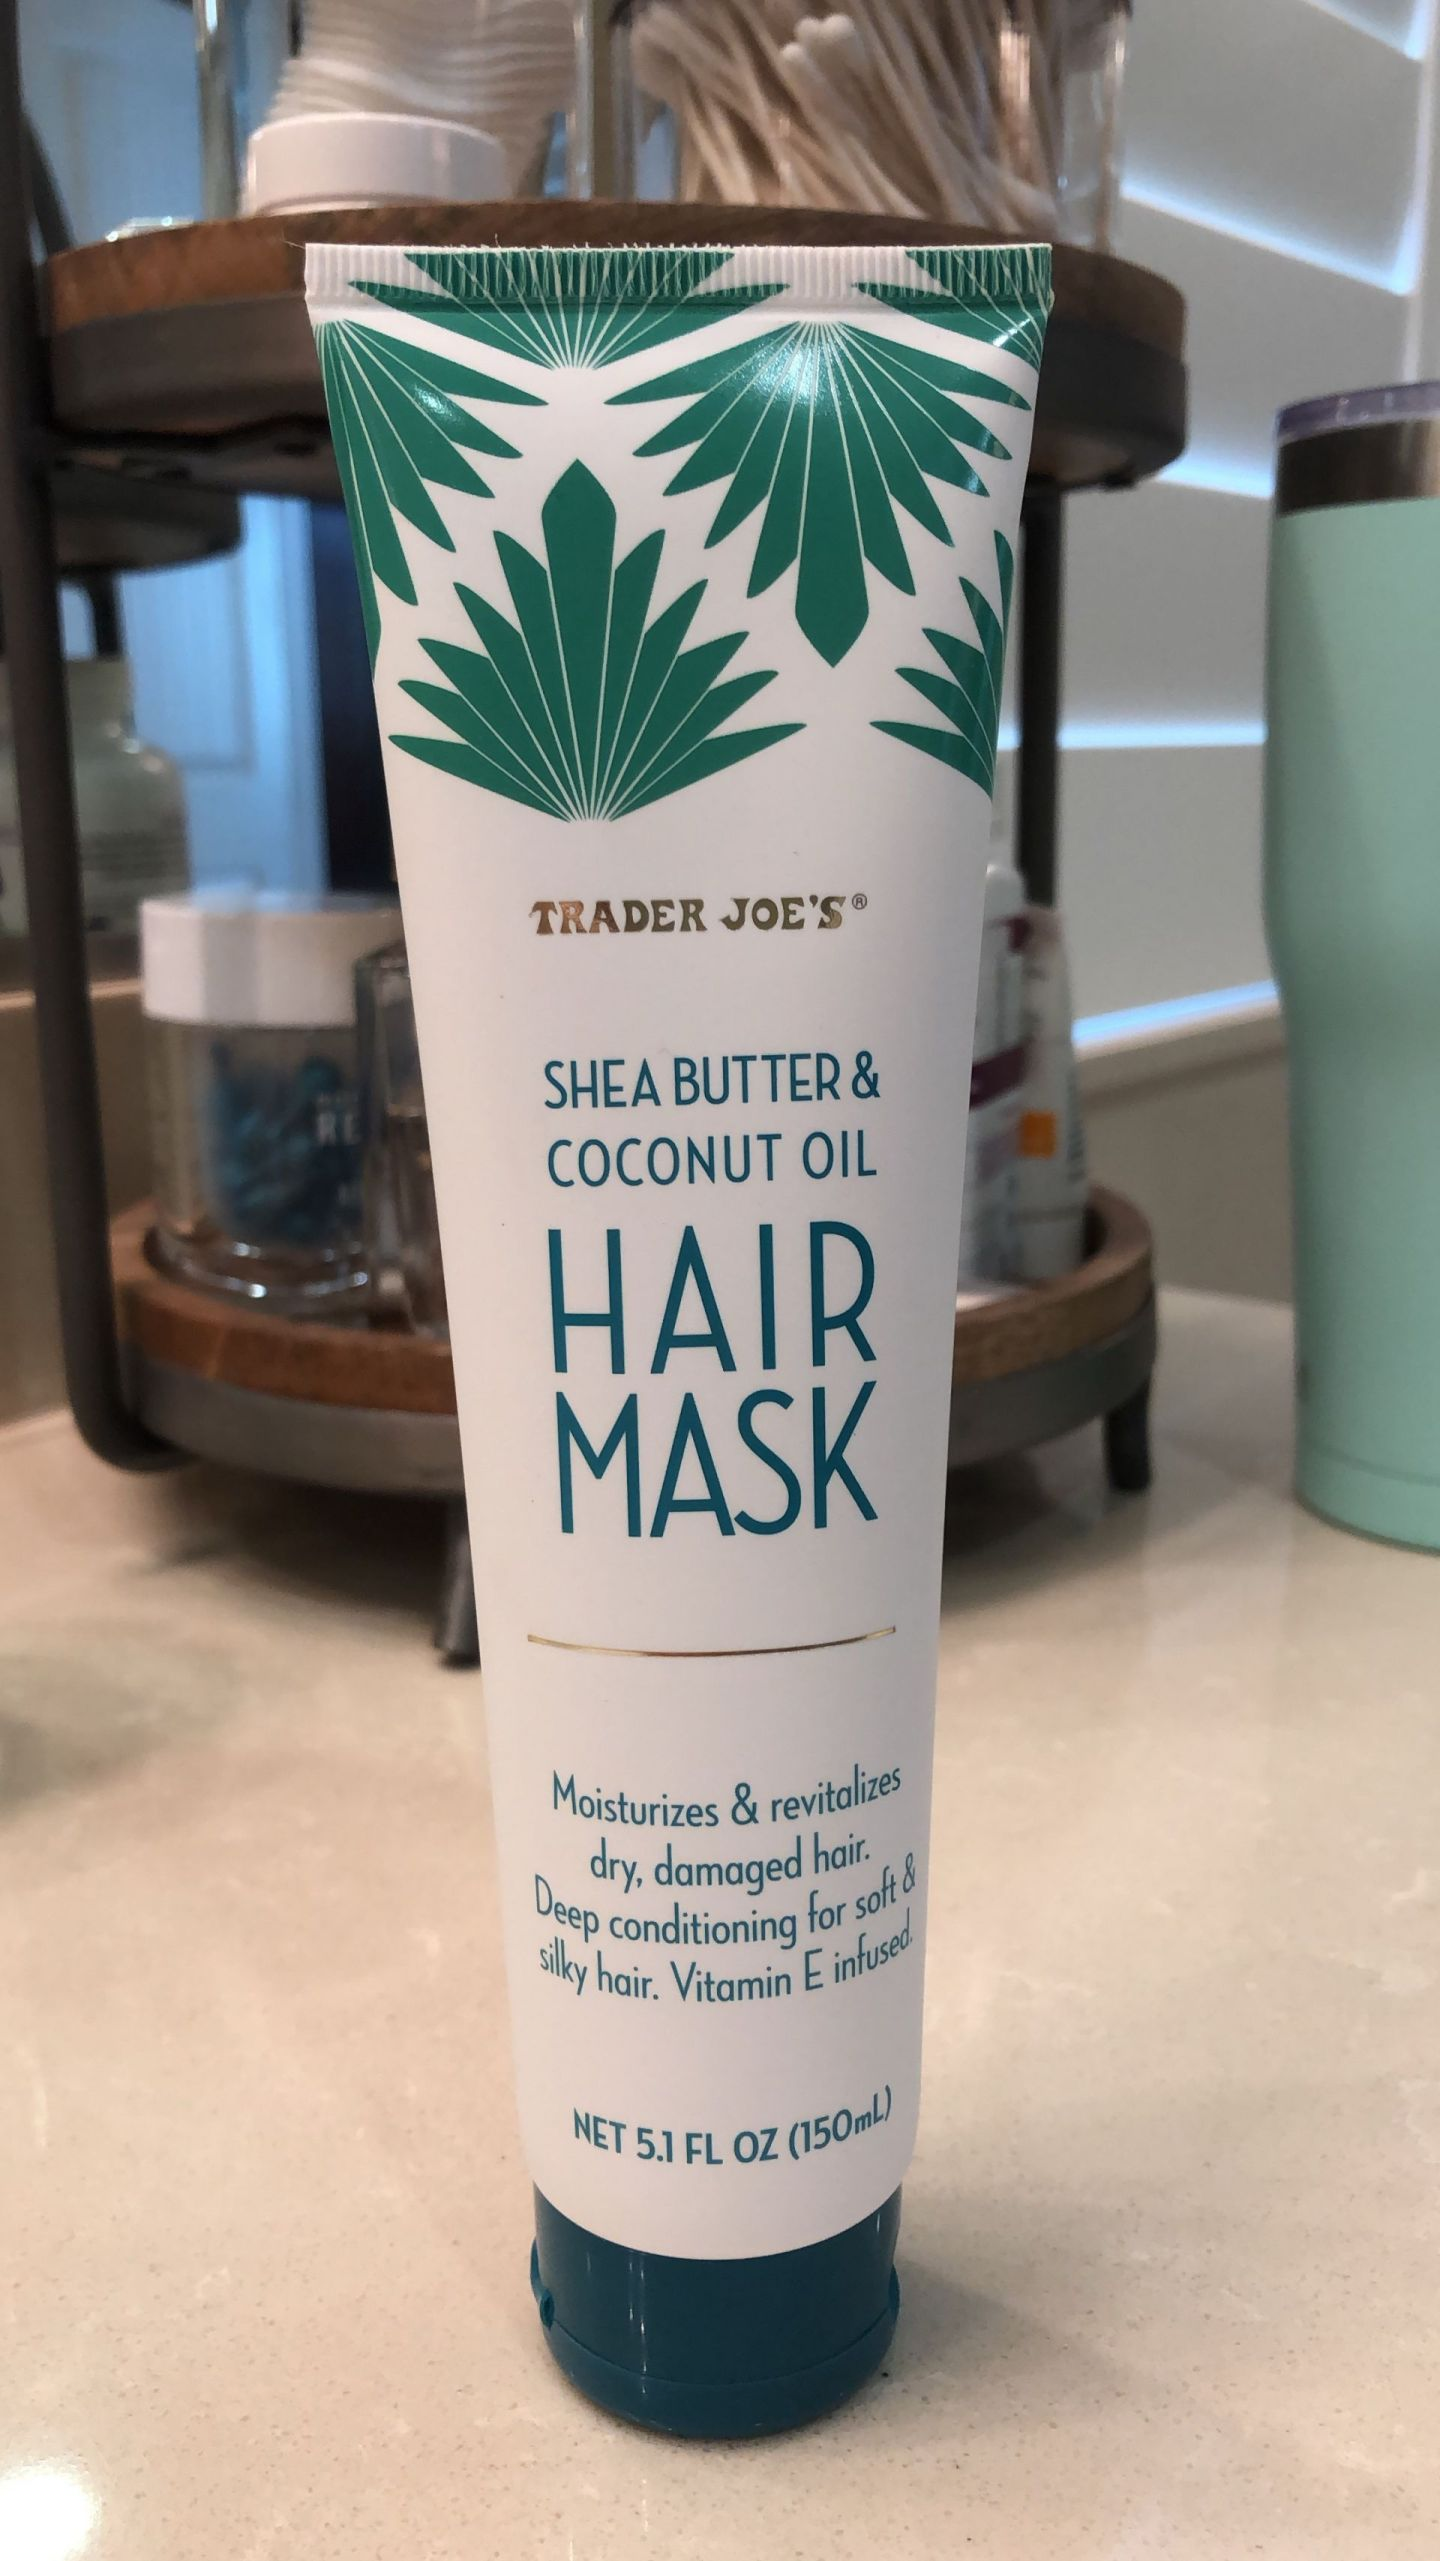 Trader Joe's Hair Mask